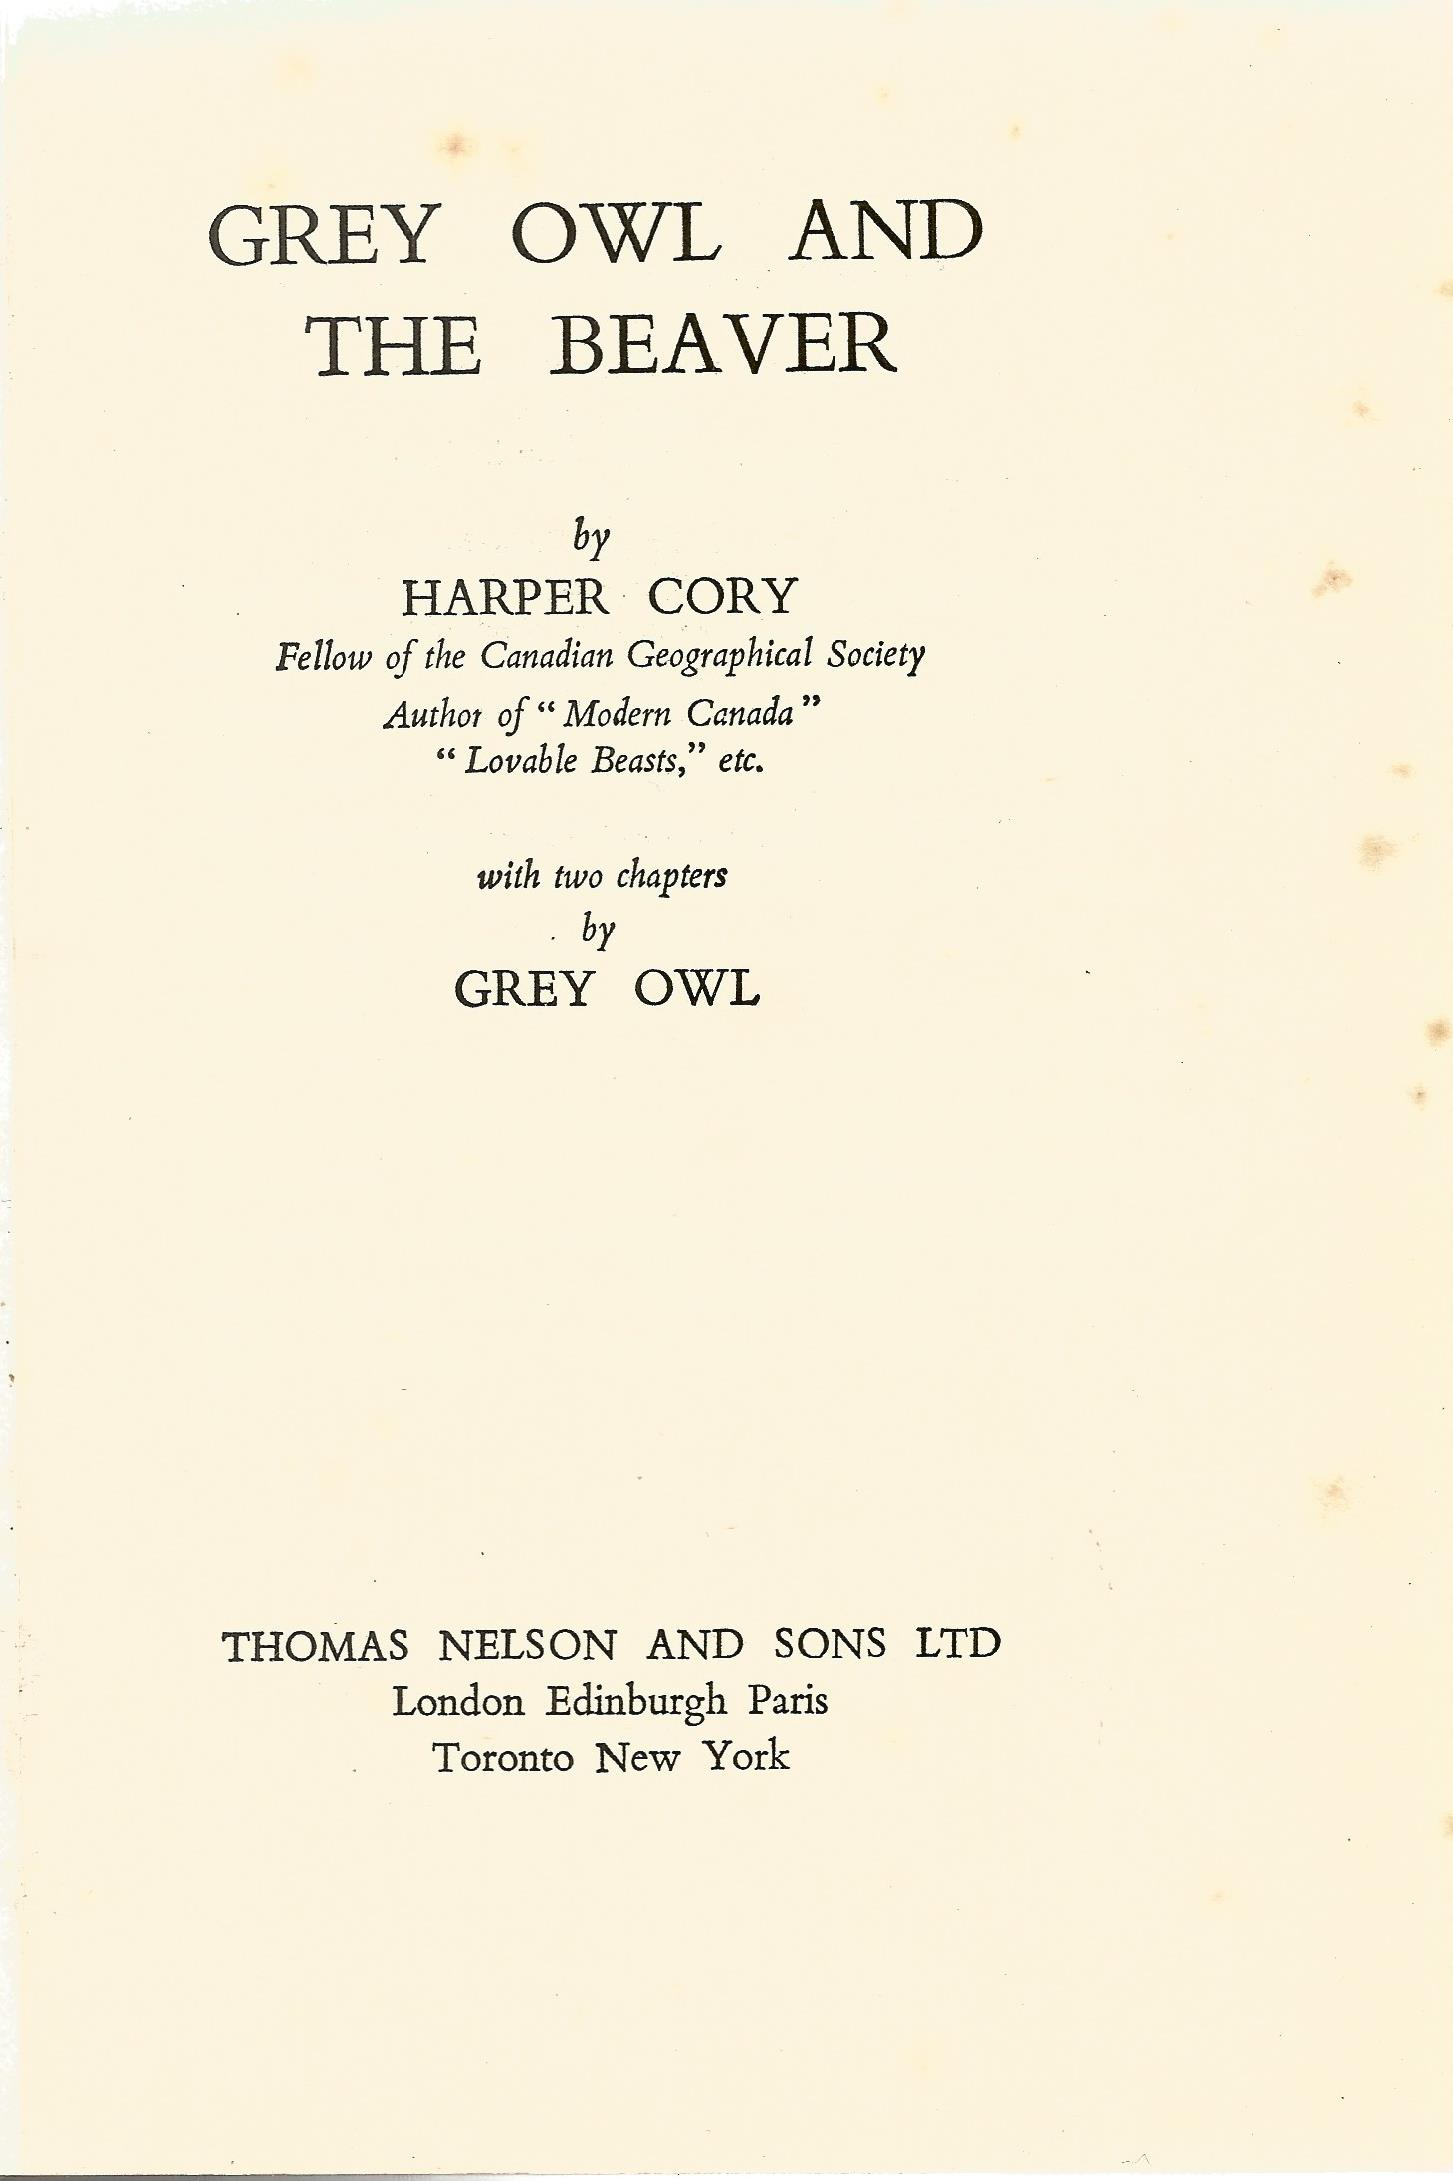 2 Hardback Books A Book of Grey Owl by E E Reynolds & Grey Owl and the Beaver by Harper Cory First - Image 5 of 6